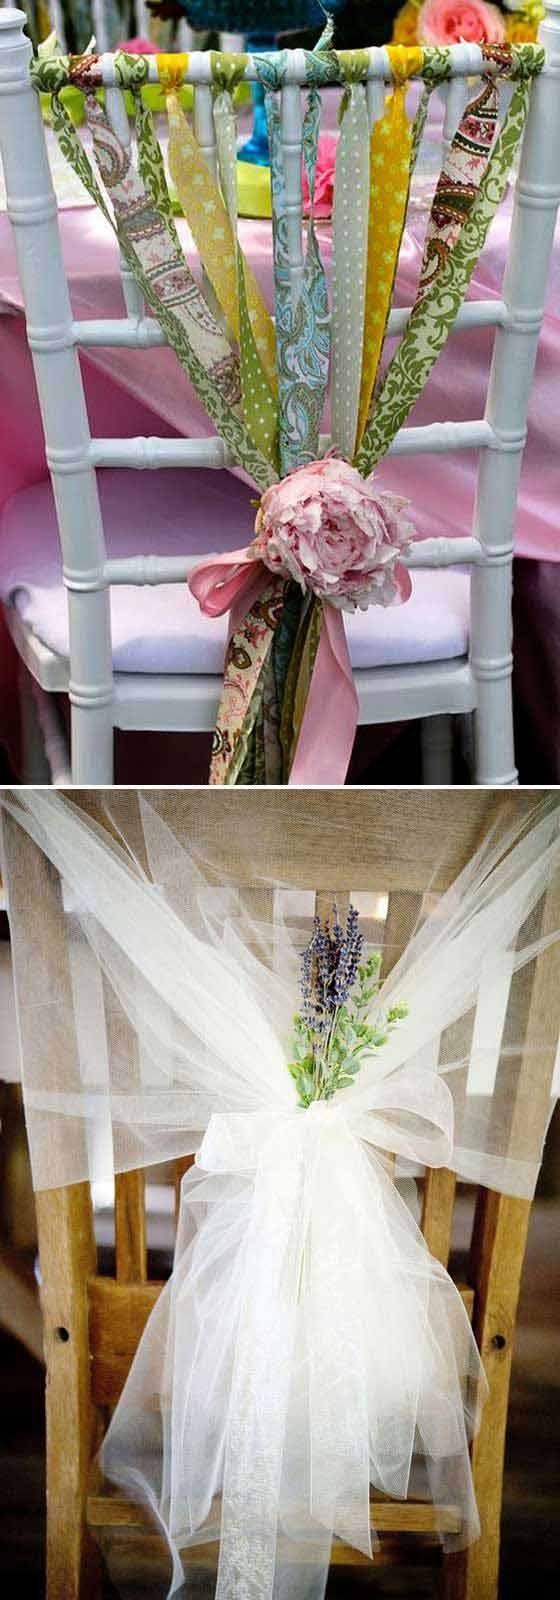 #6. Ribbon-tied chairs would be effective decorations for a festive event. The Best 31 DIYs and Hacks To Save Money On Your Wedding